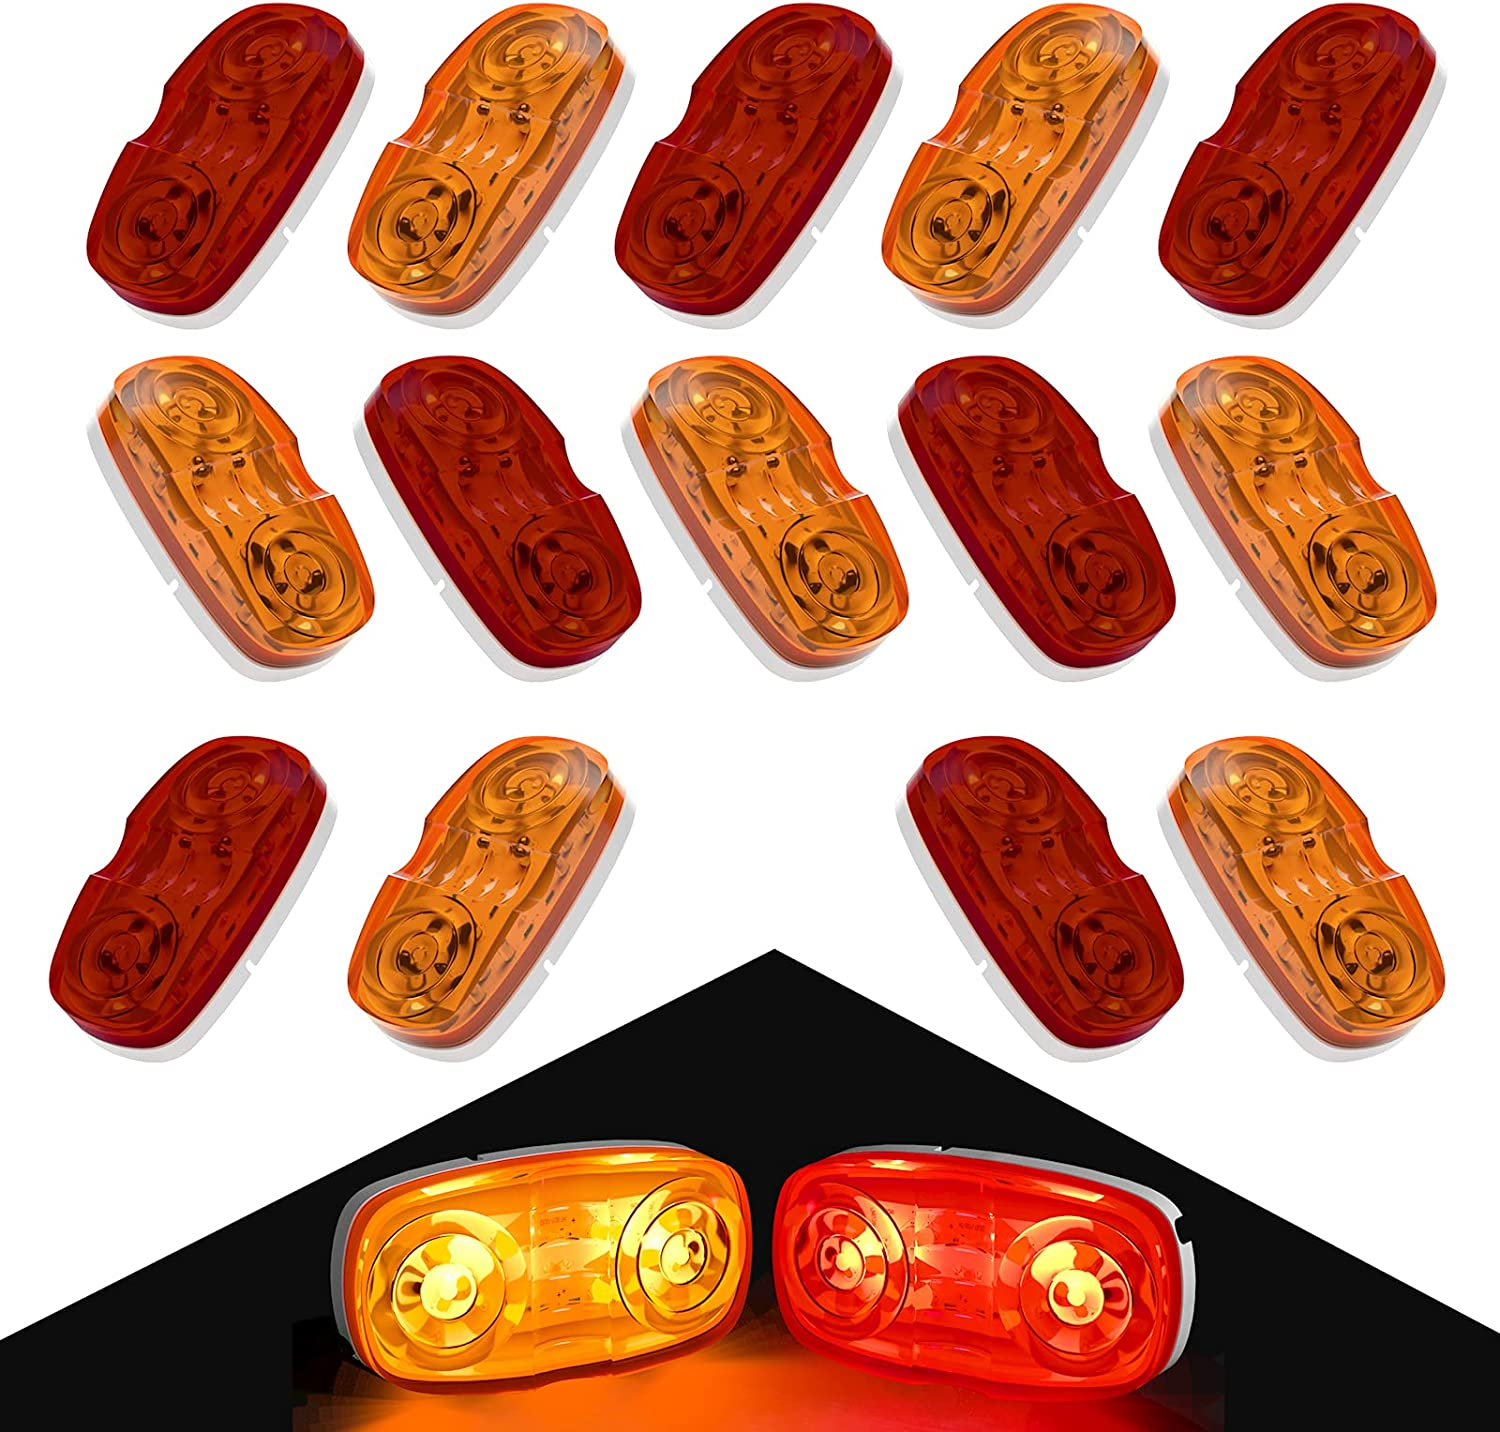 Tinpec 14 x LED Trailer Marker 2021new shipping free shipping Lights Double Bullseye with Max 53% OFF Di 10